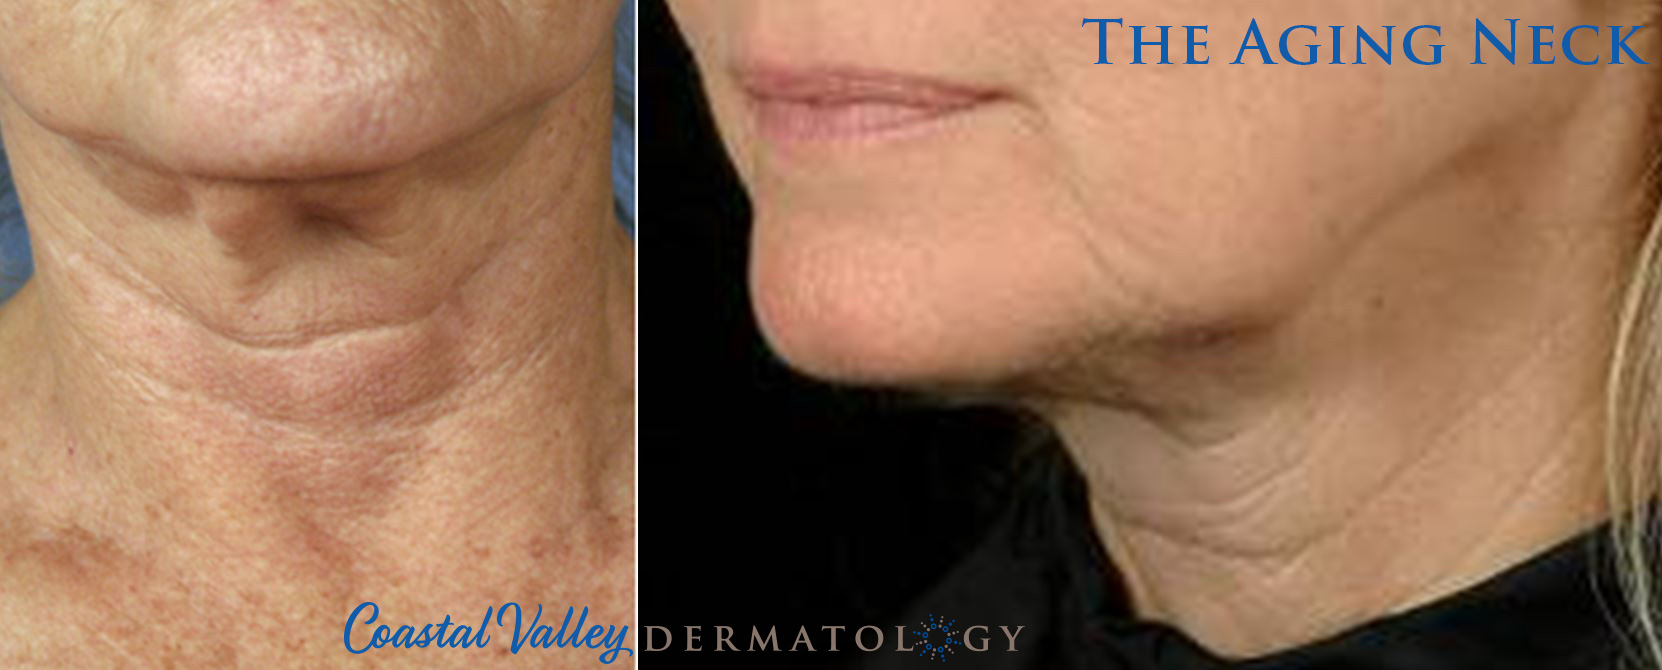 coastal-valley-dermatology-carmel-aging-neck-rejuvenation-photo